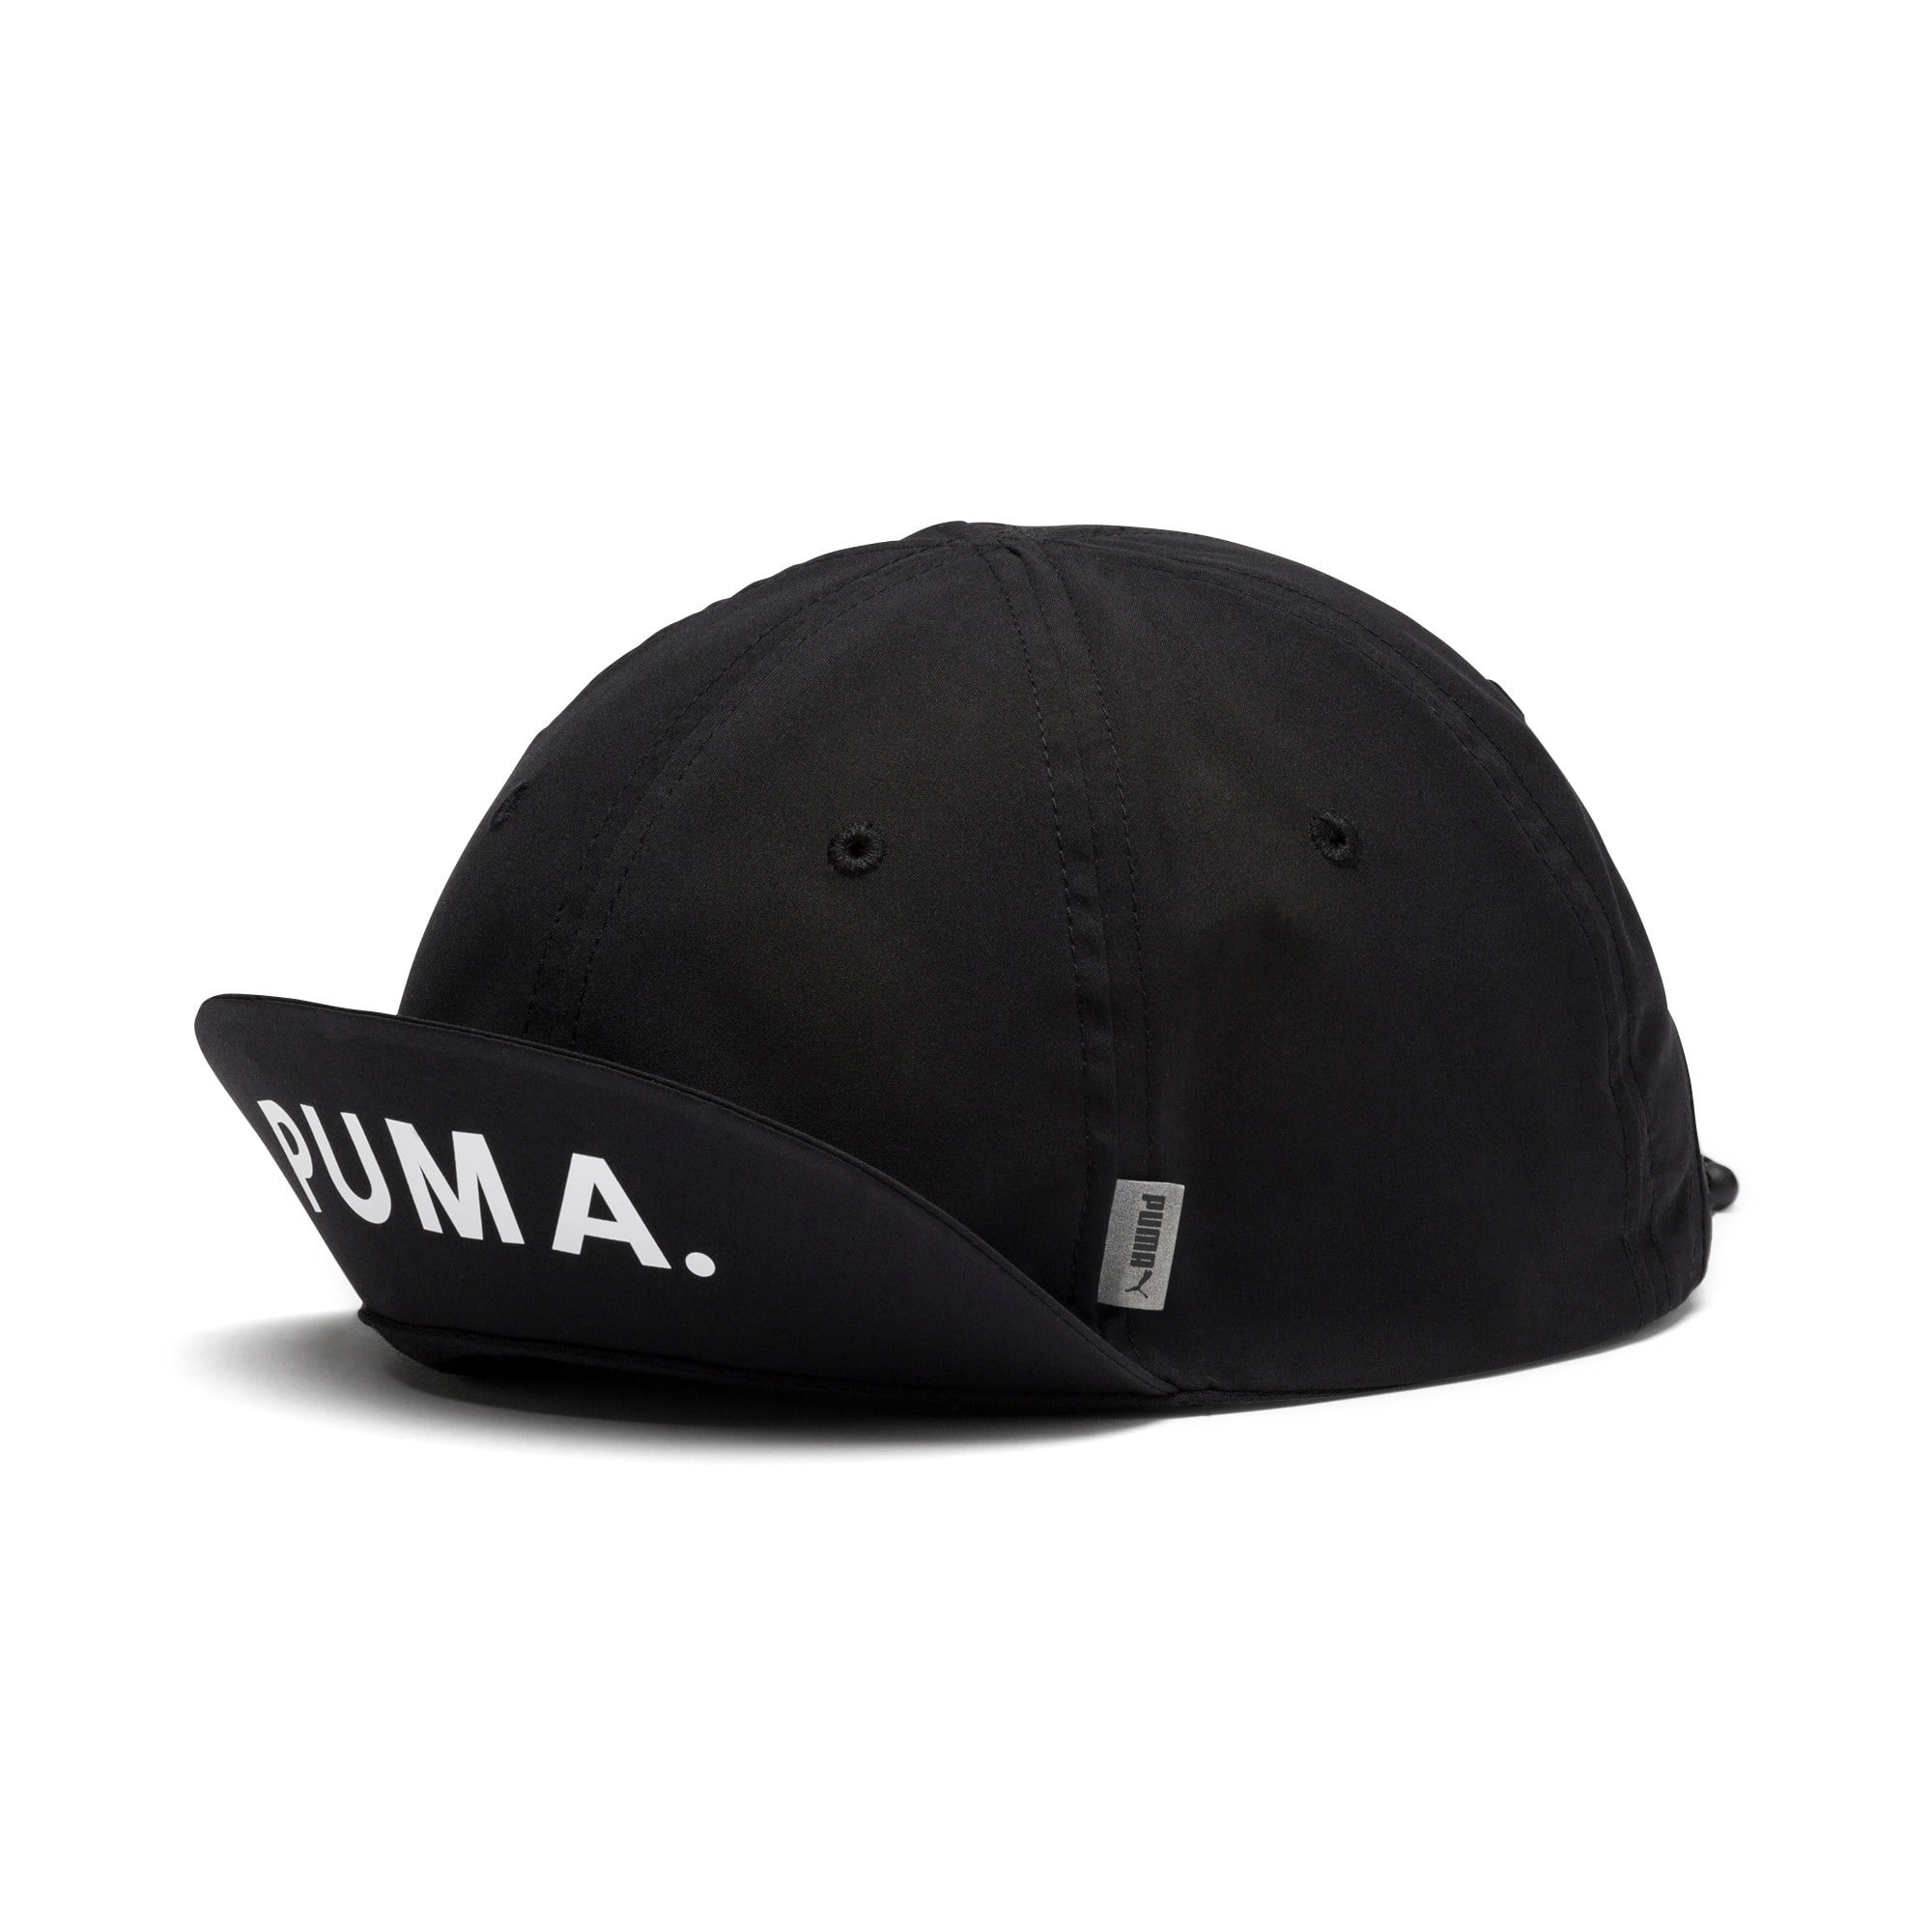 Thumbnail 1 of Epoch Low Curve Cap, Puma Black-Puma White, medium